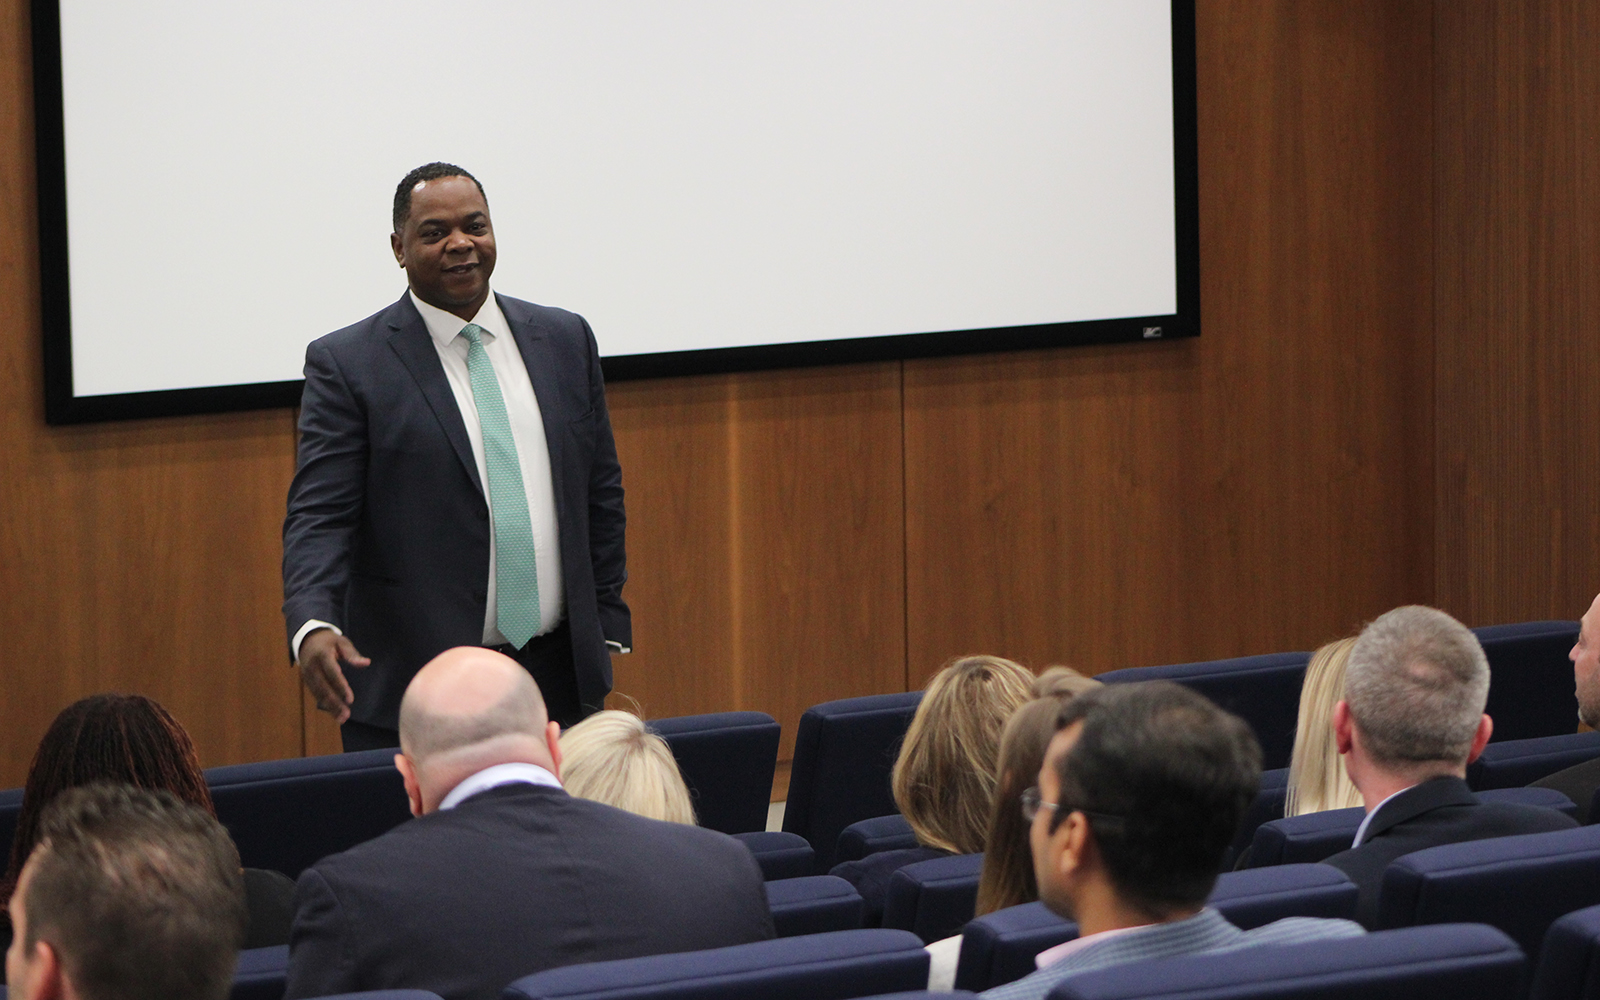 André Ross, Executive Director of Global Corporate Banking with JP Morgan, addresses EMBA Class of 2020